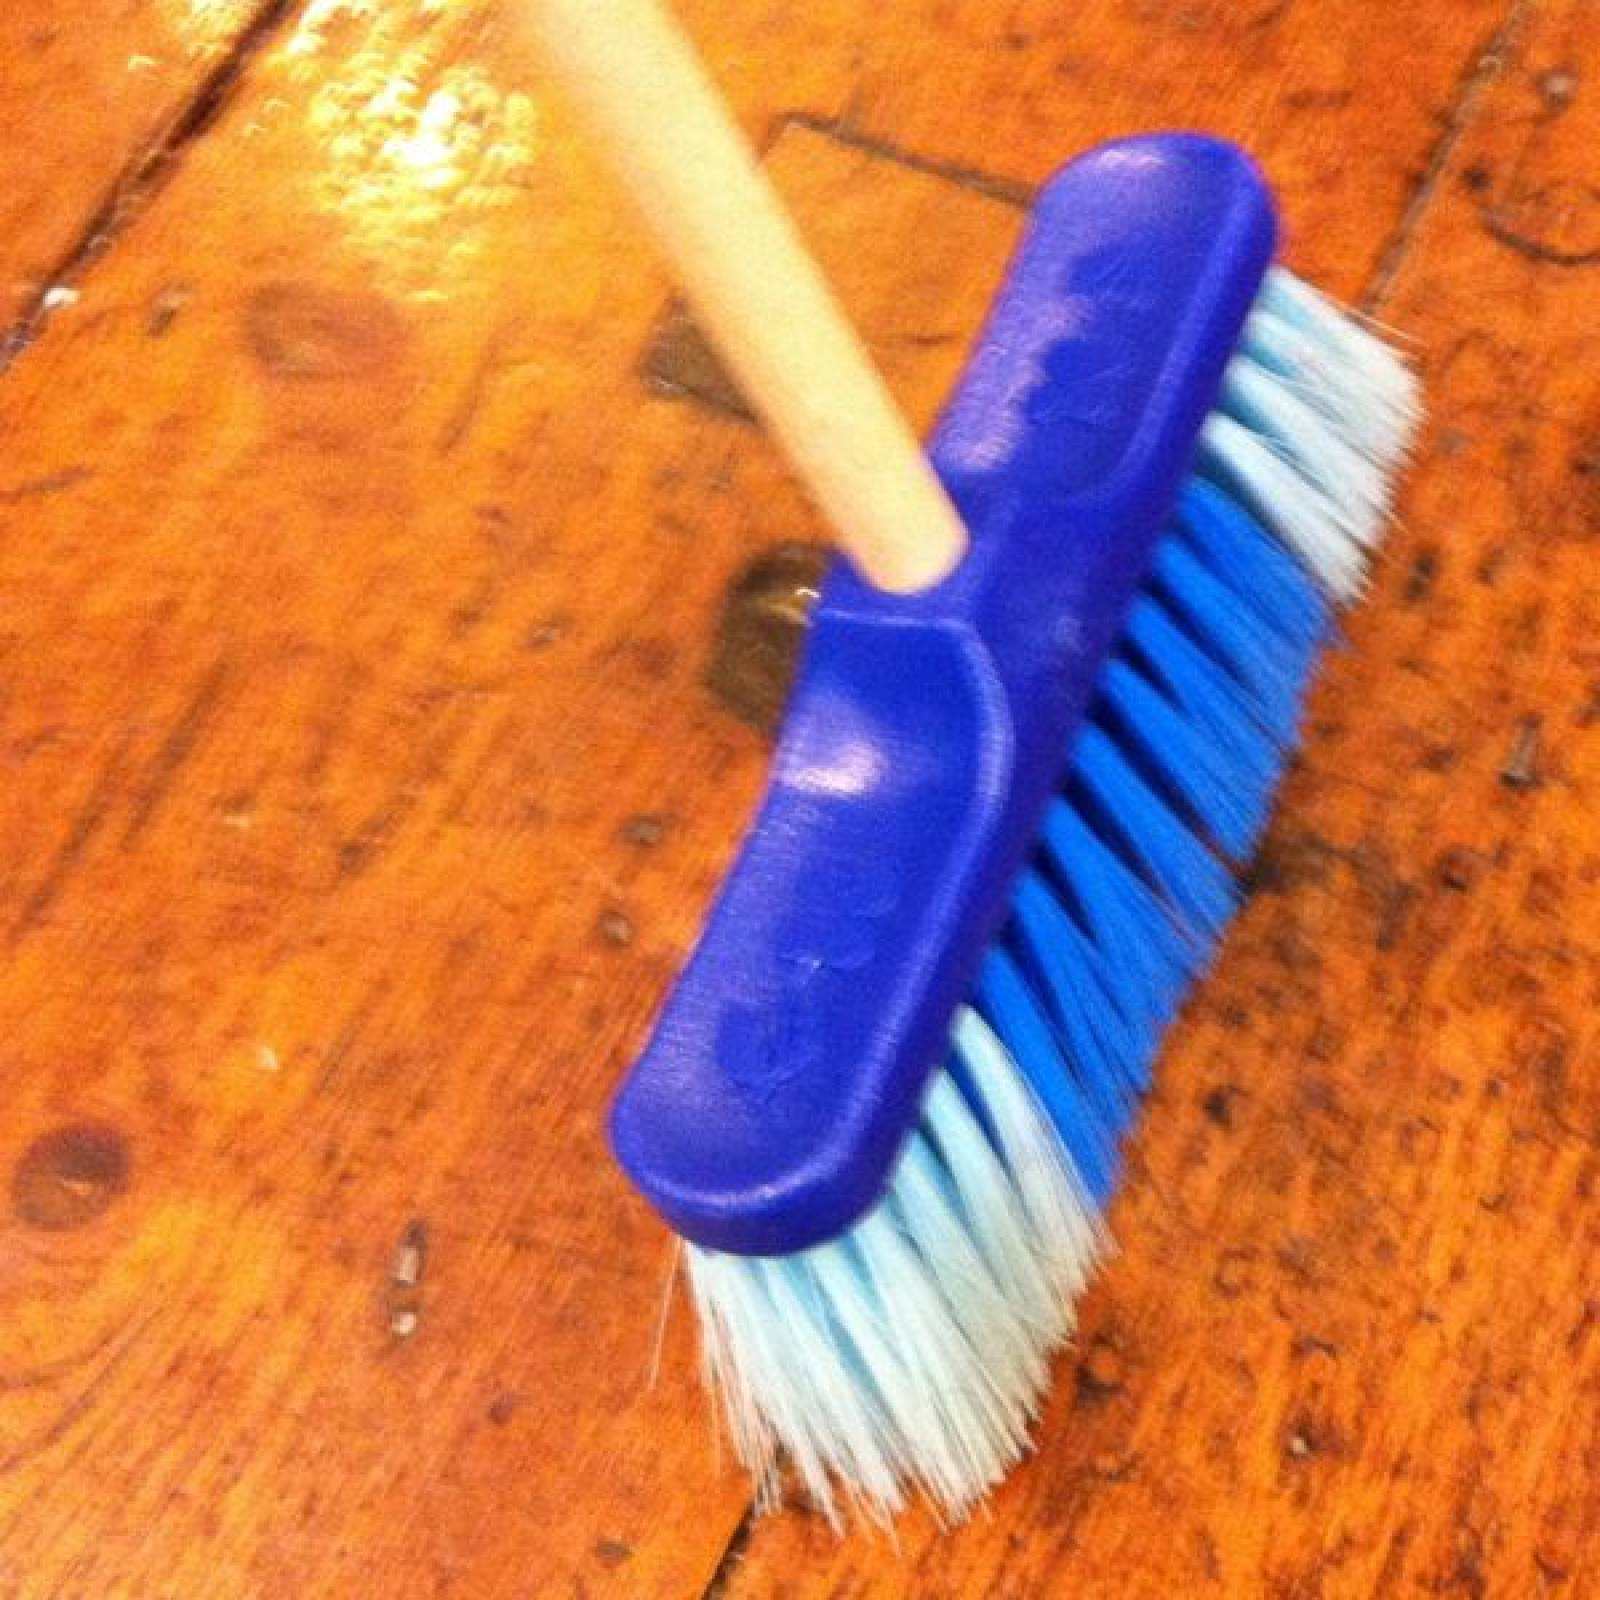 Classic Toy Broom/Brush Wooden Handle.